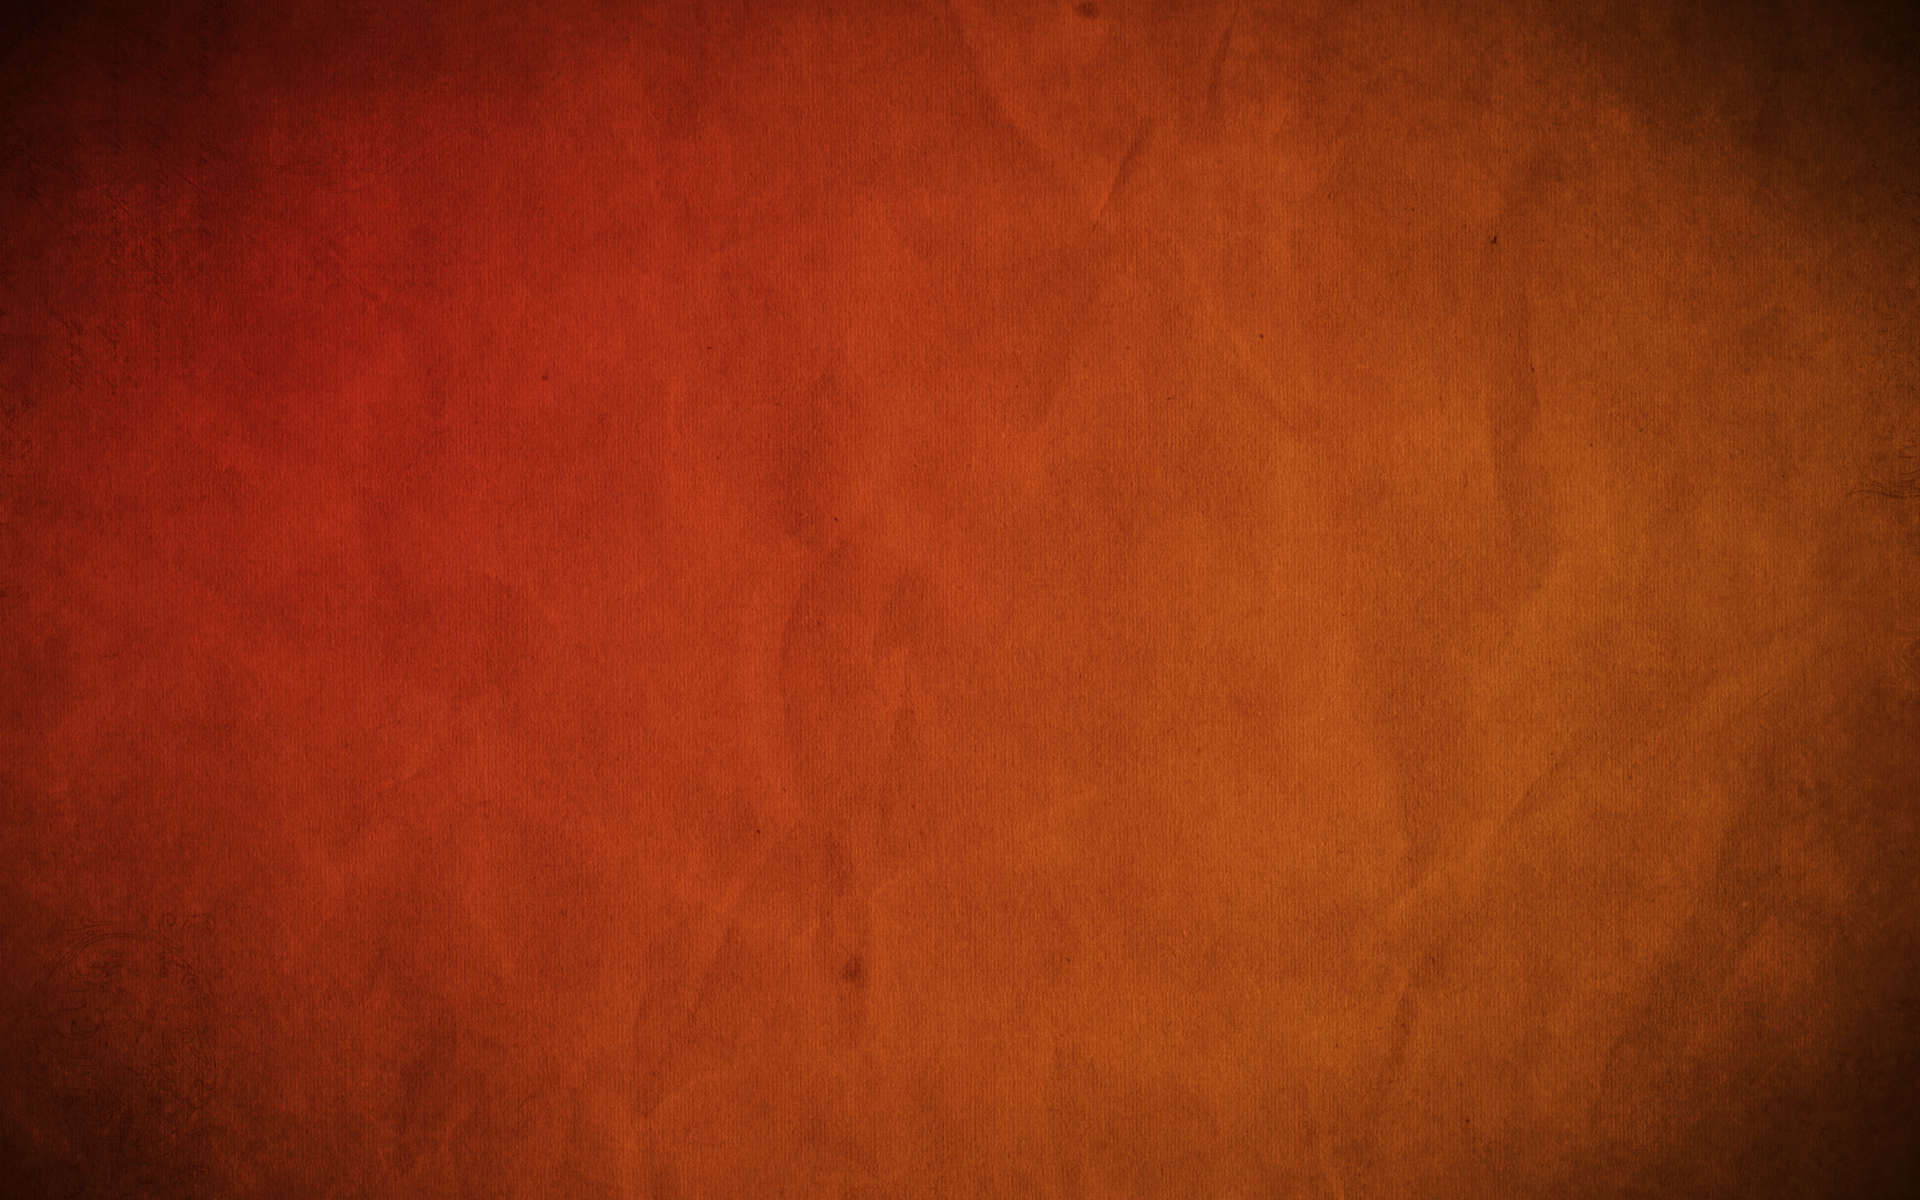 orange background texture orange minimalism red template